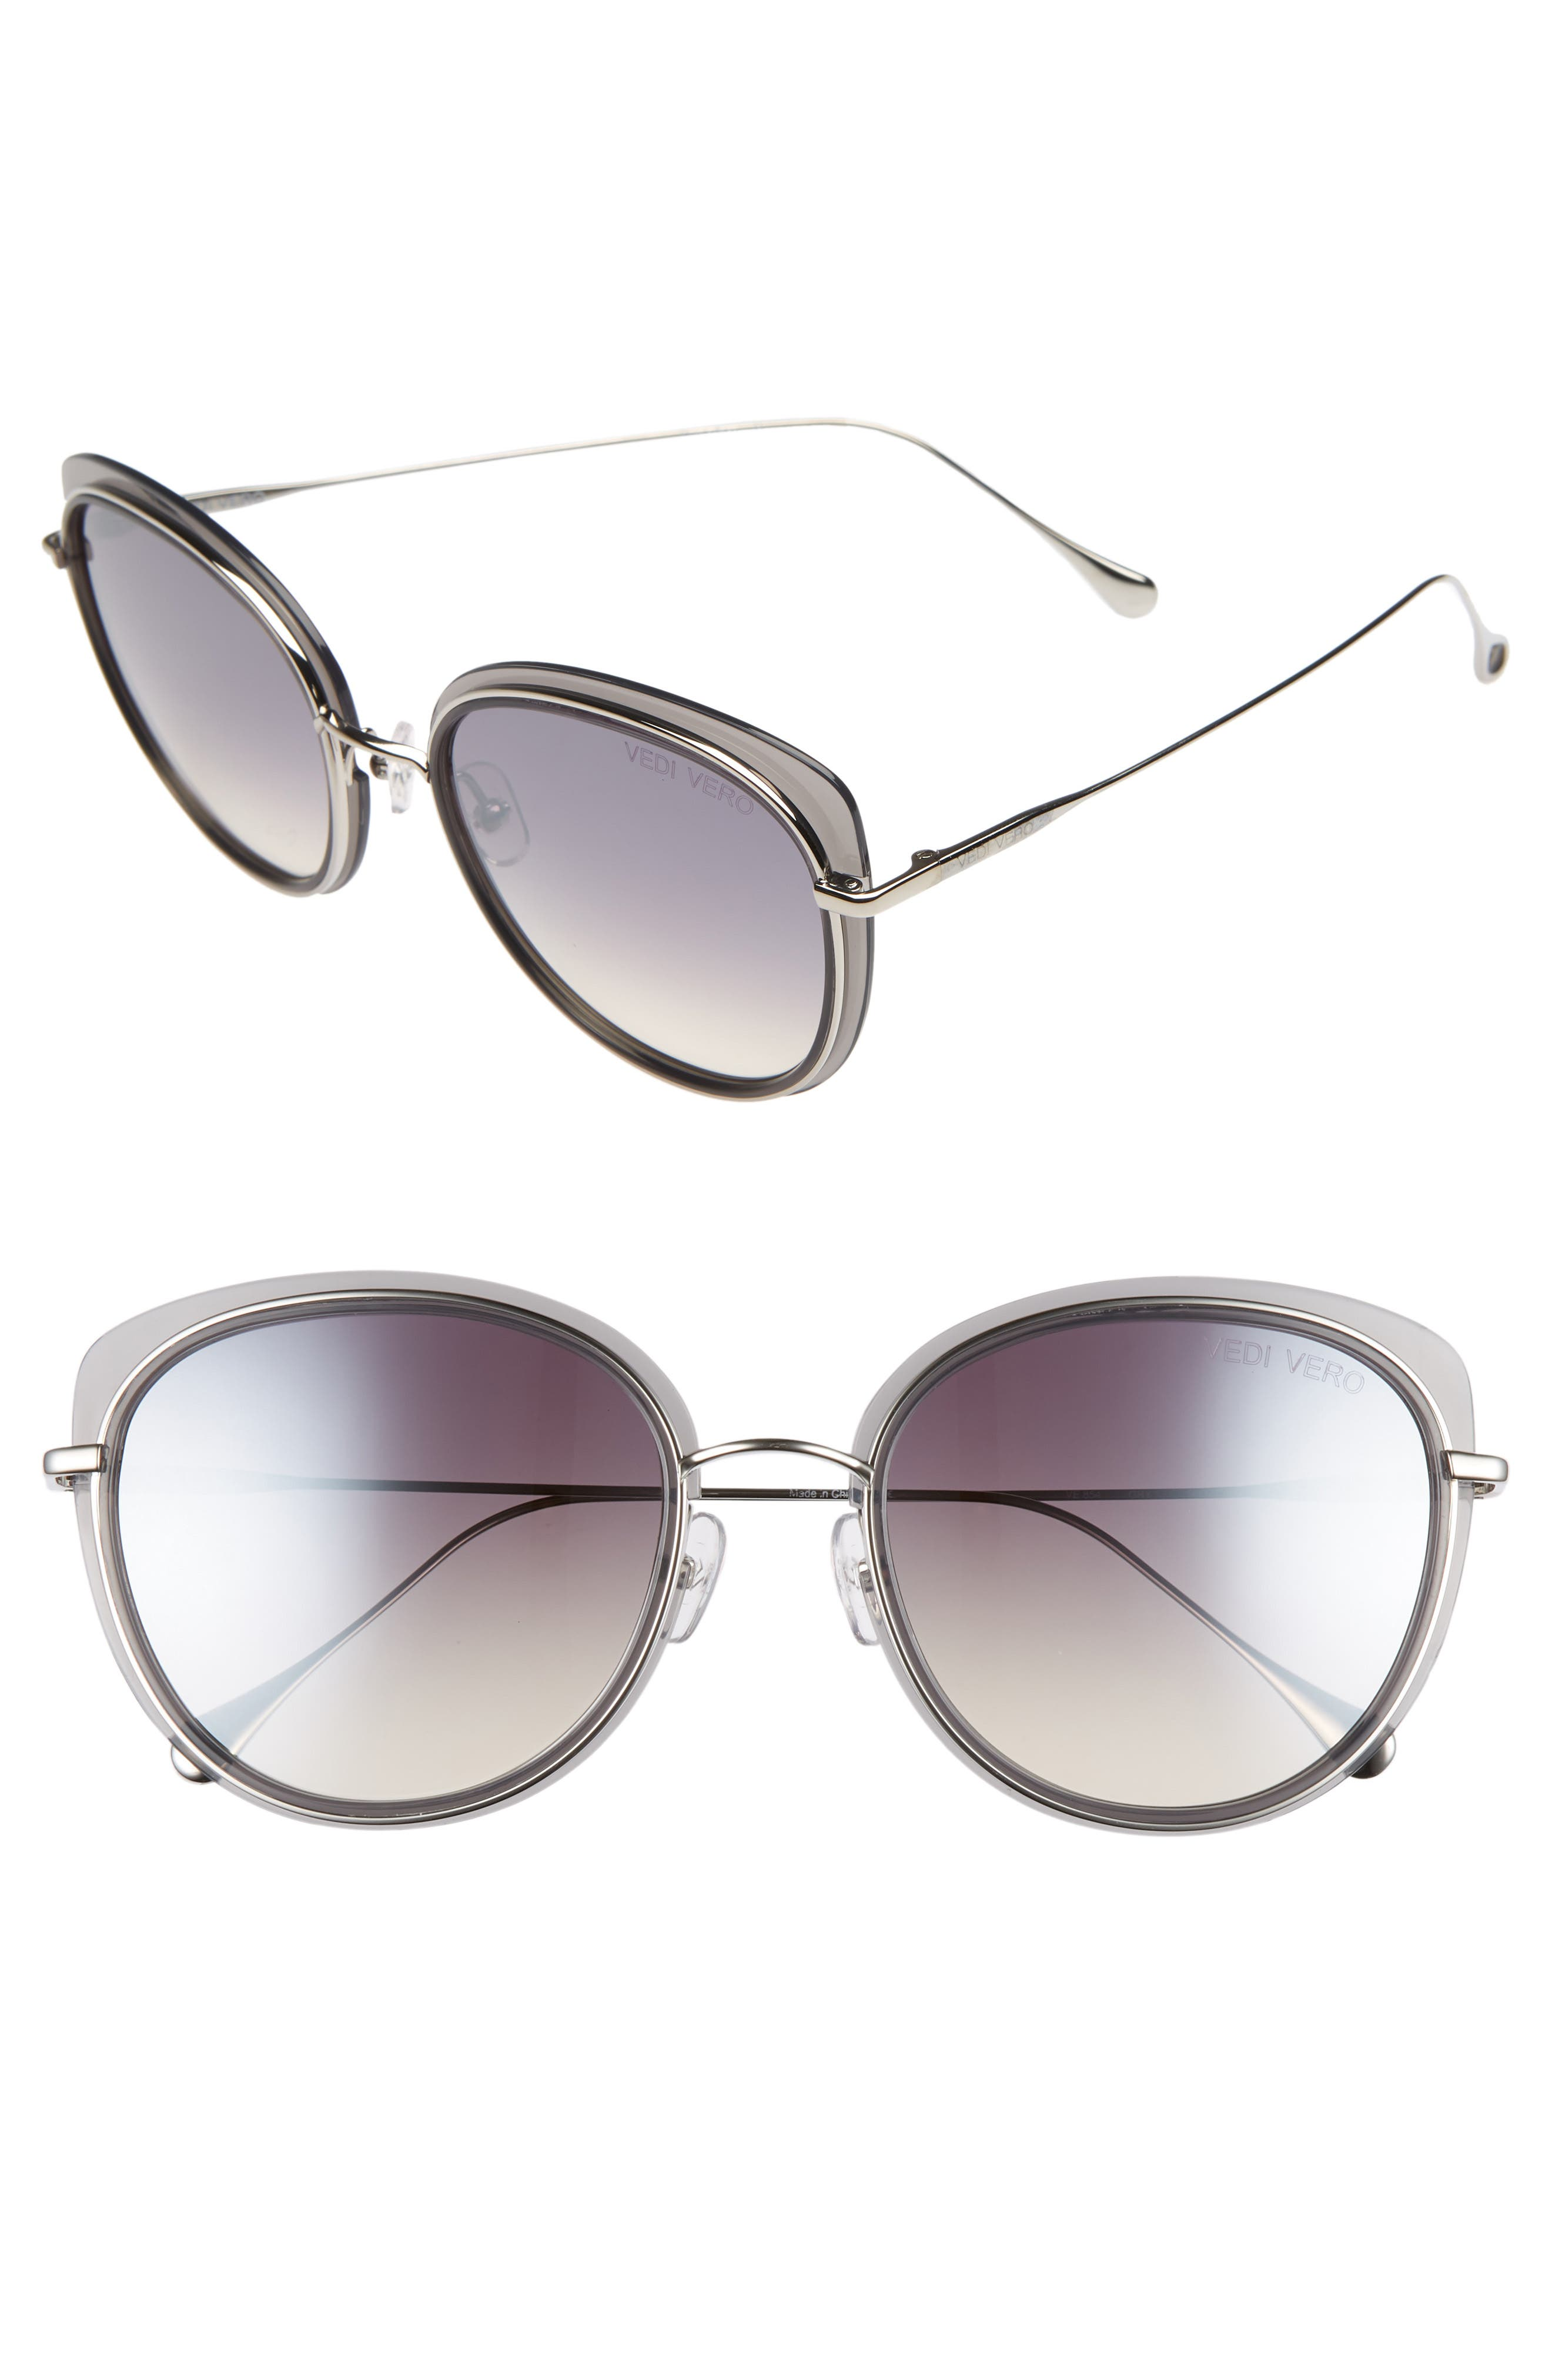 VEDI VERO 56Mm Round Sunglasses - Milky Light Grey